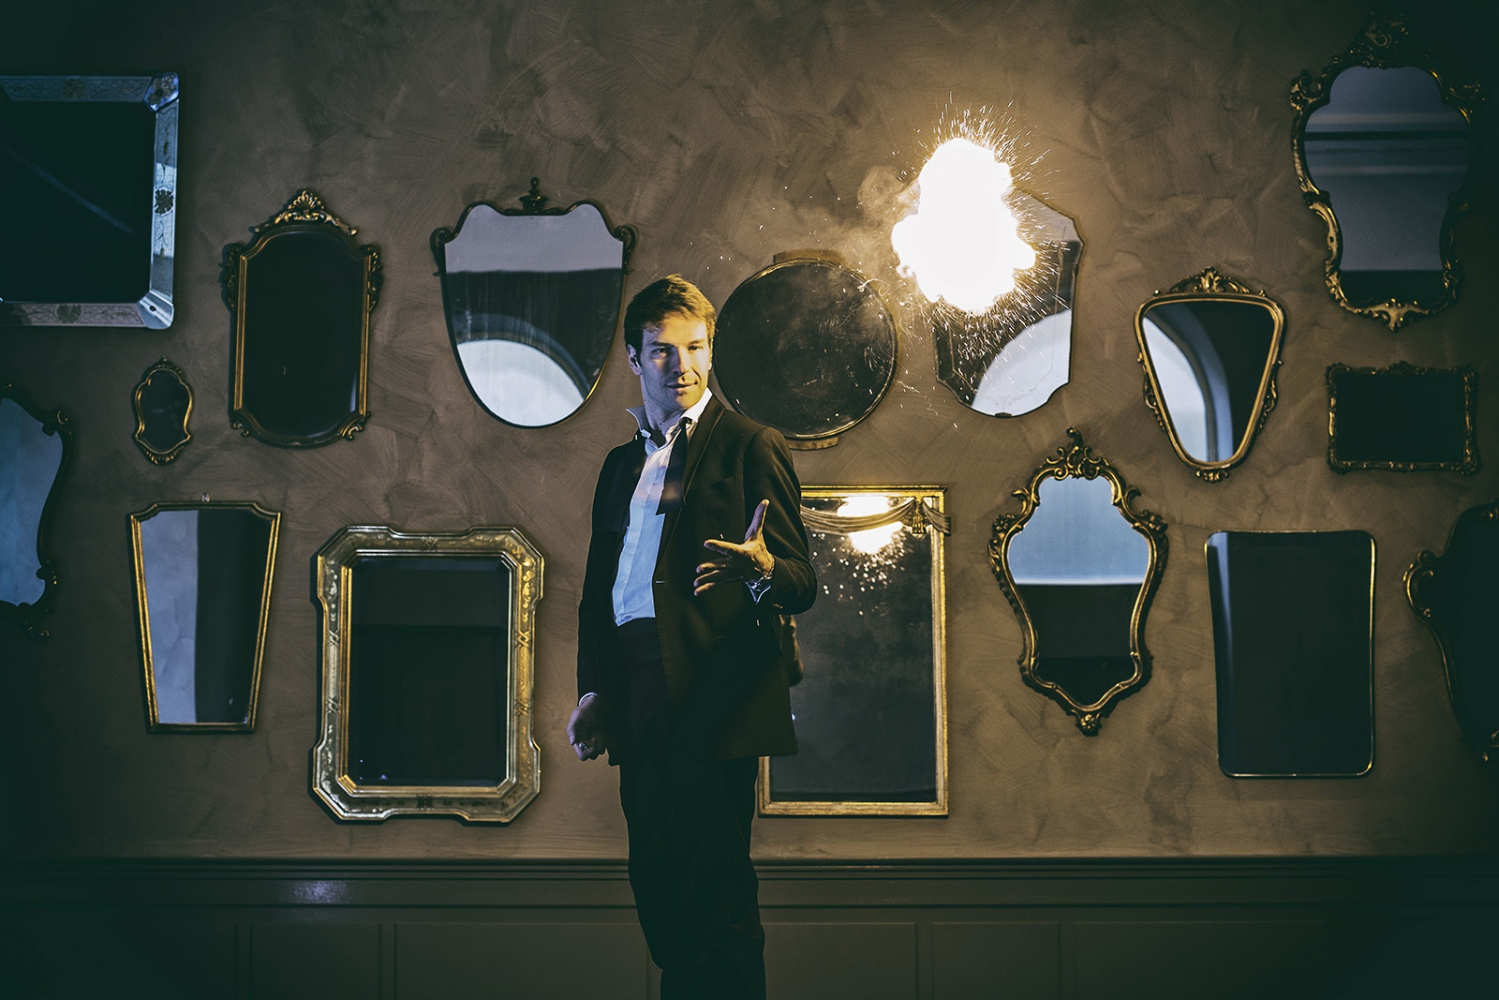 Magician a the casino of Saint Vincent, for Vanity Fair, 2014